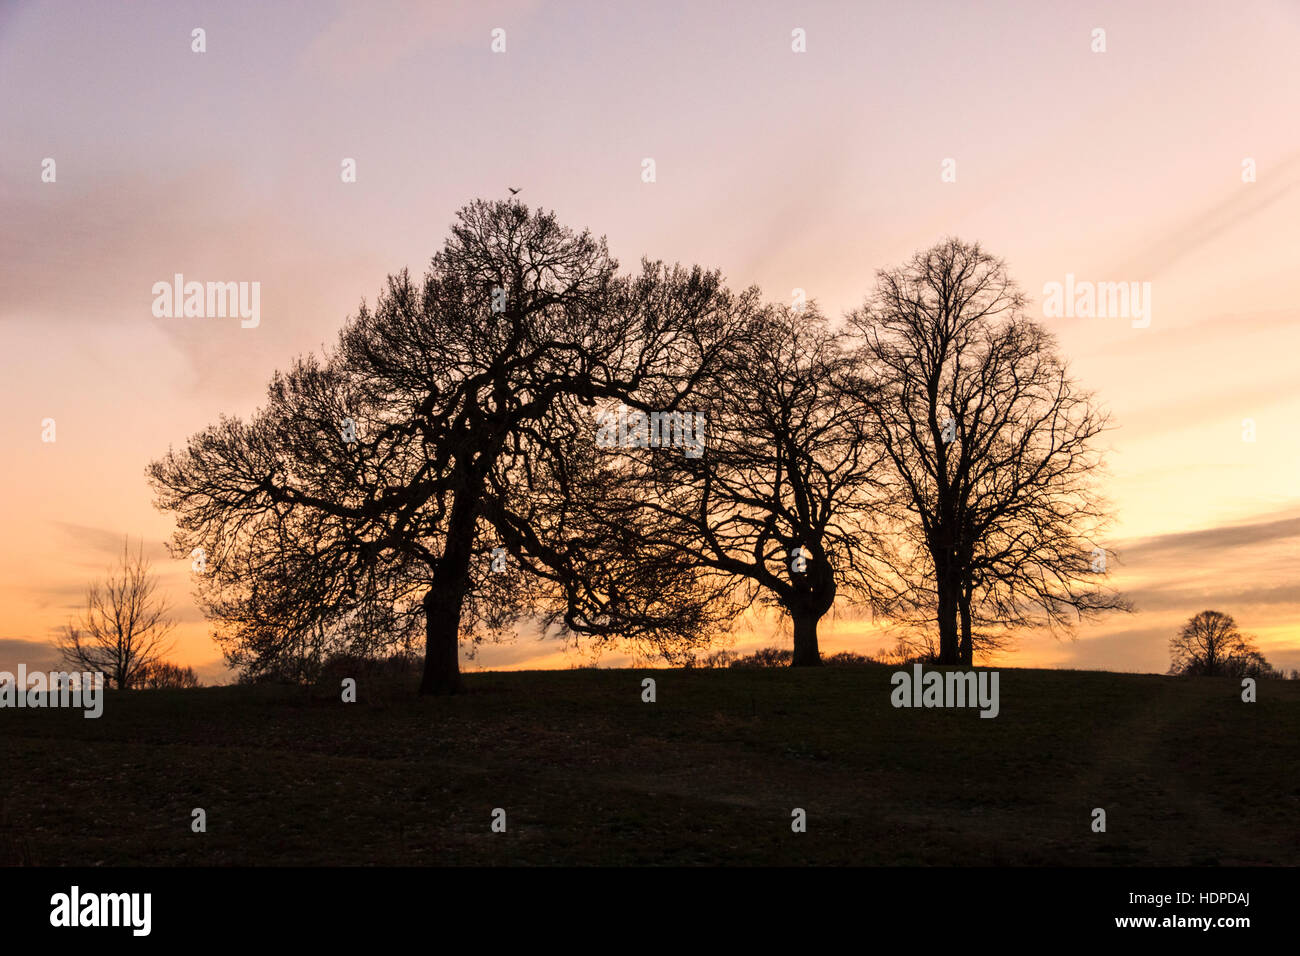 Bare oak trees on the brow of a hill, silhouetted by the sunset - Stock Image